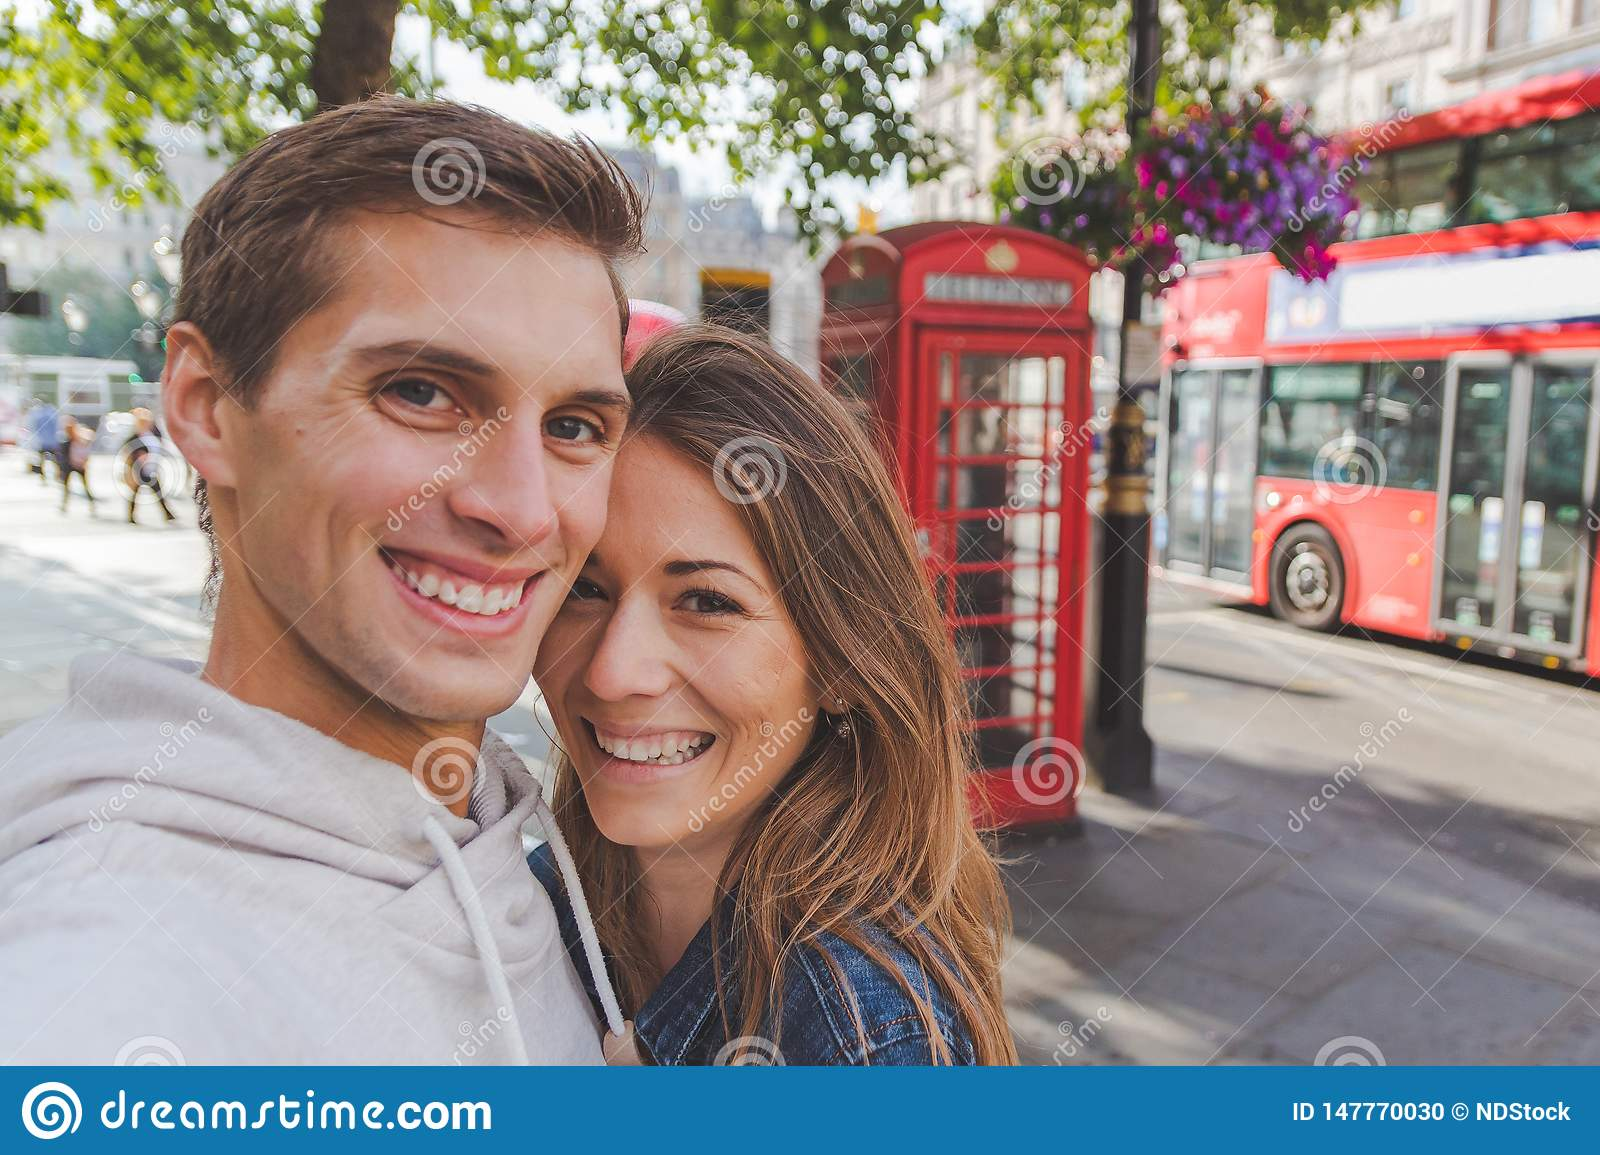 Happy young couple taking a selfie in front of a phone box and a red bus in London